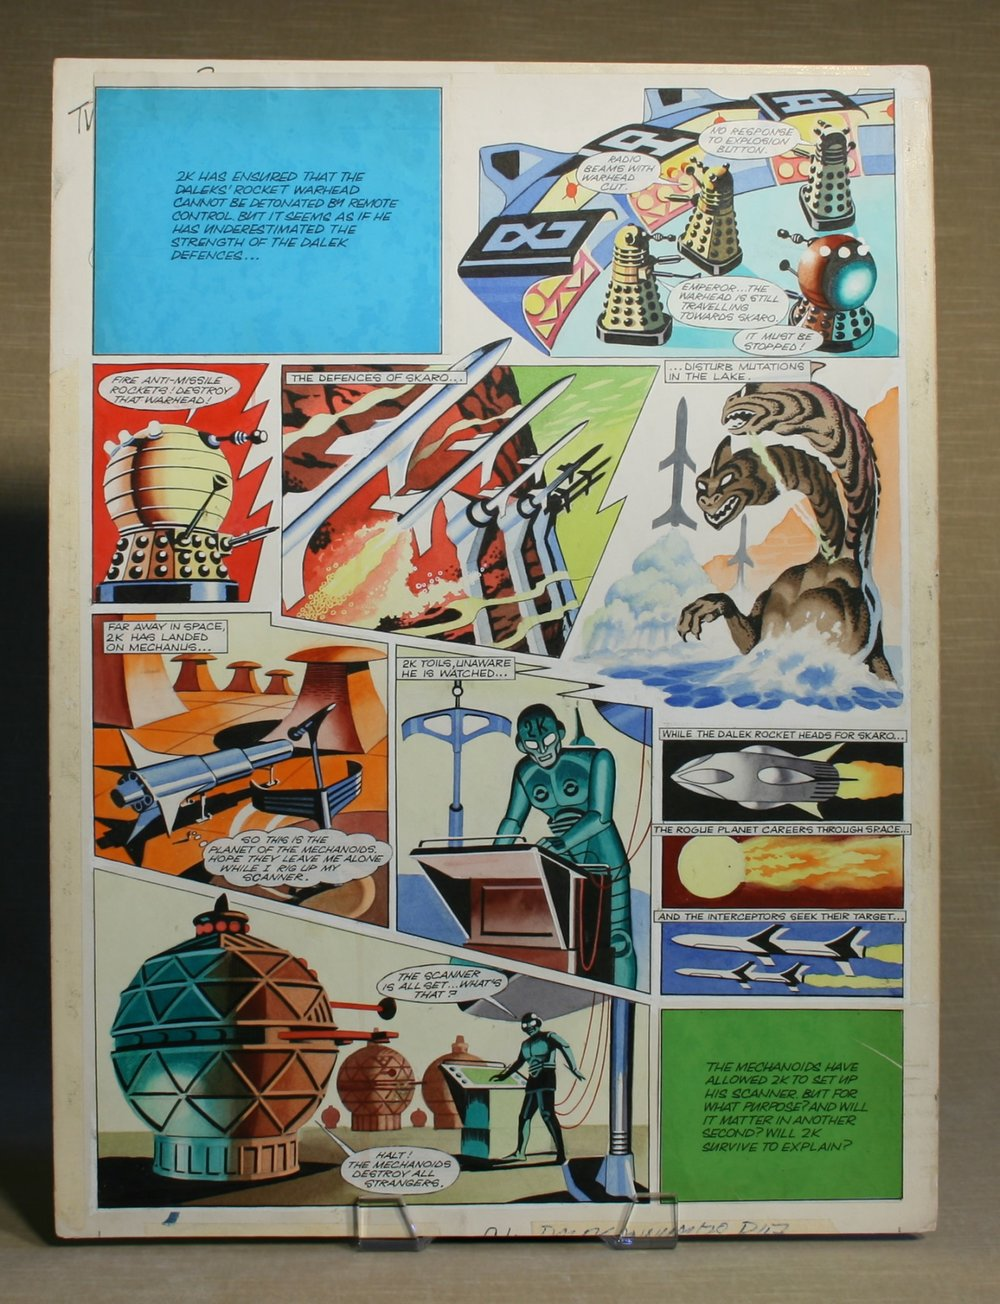 Original artwork for the Dalek strip in TV Century 21, no. 68